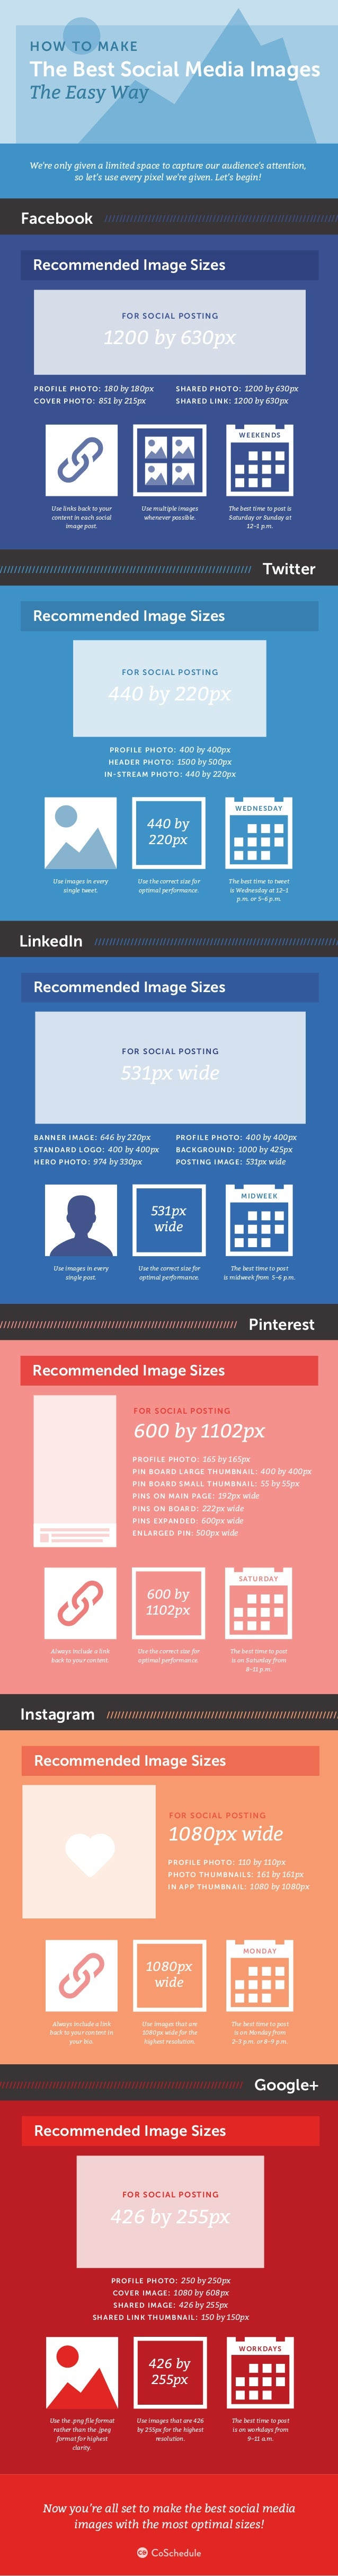 HOW TO MAKE The Best Social Media Images The Easy Way We're only given a limited space to capture our audience's attention...